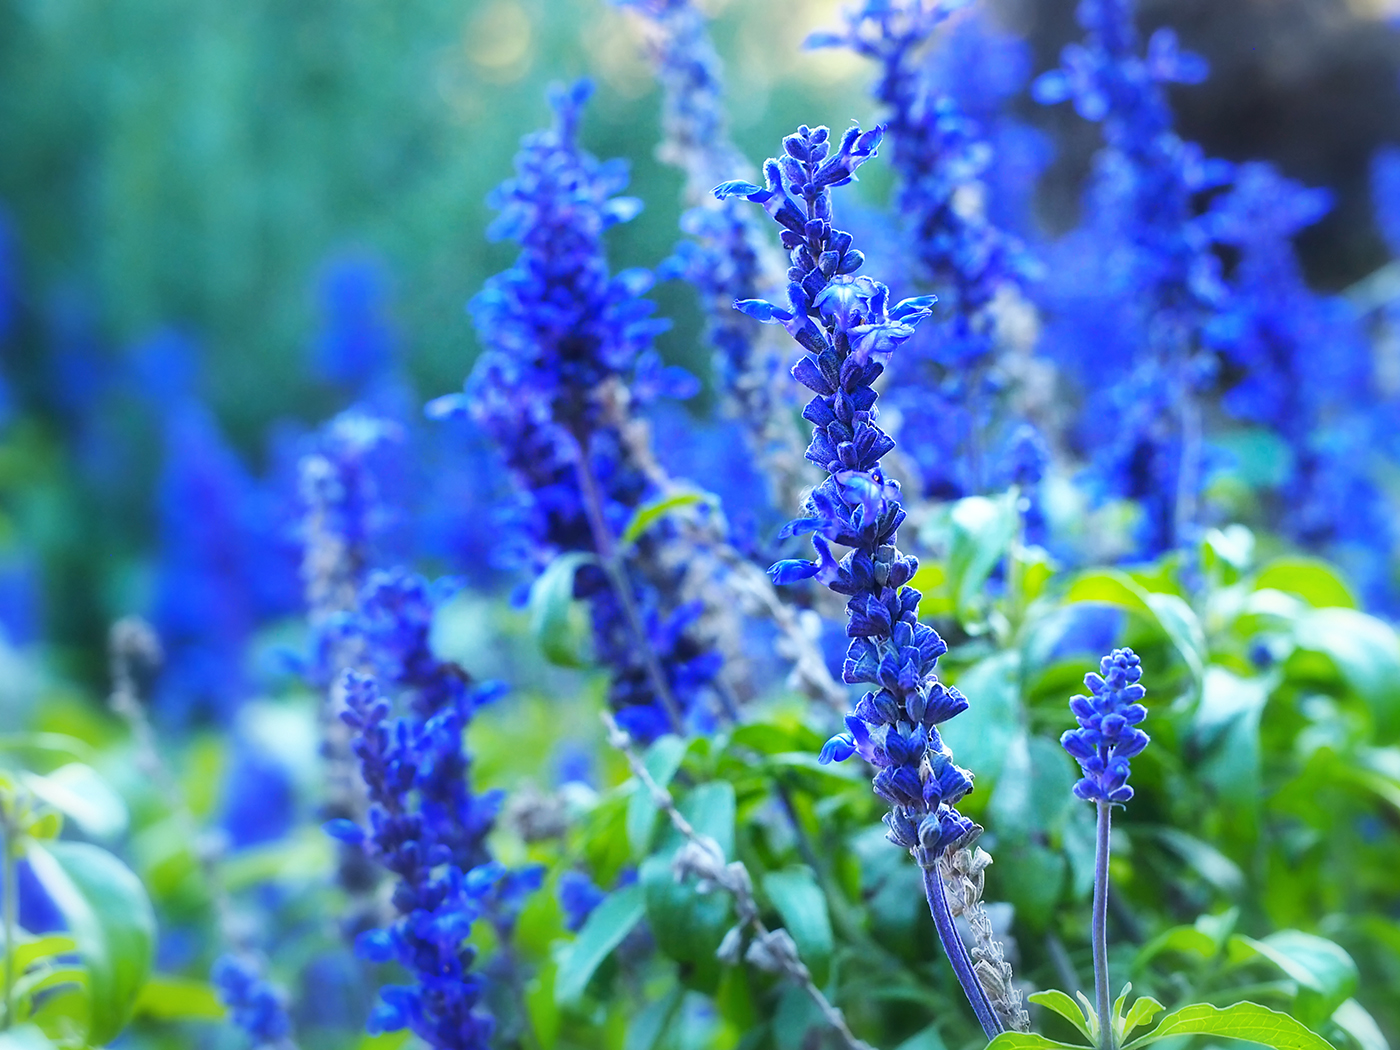 The bright blue flowers of S.farinacea or Blue Salvia, also known as mealycup sage.